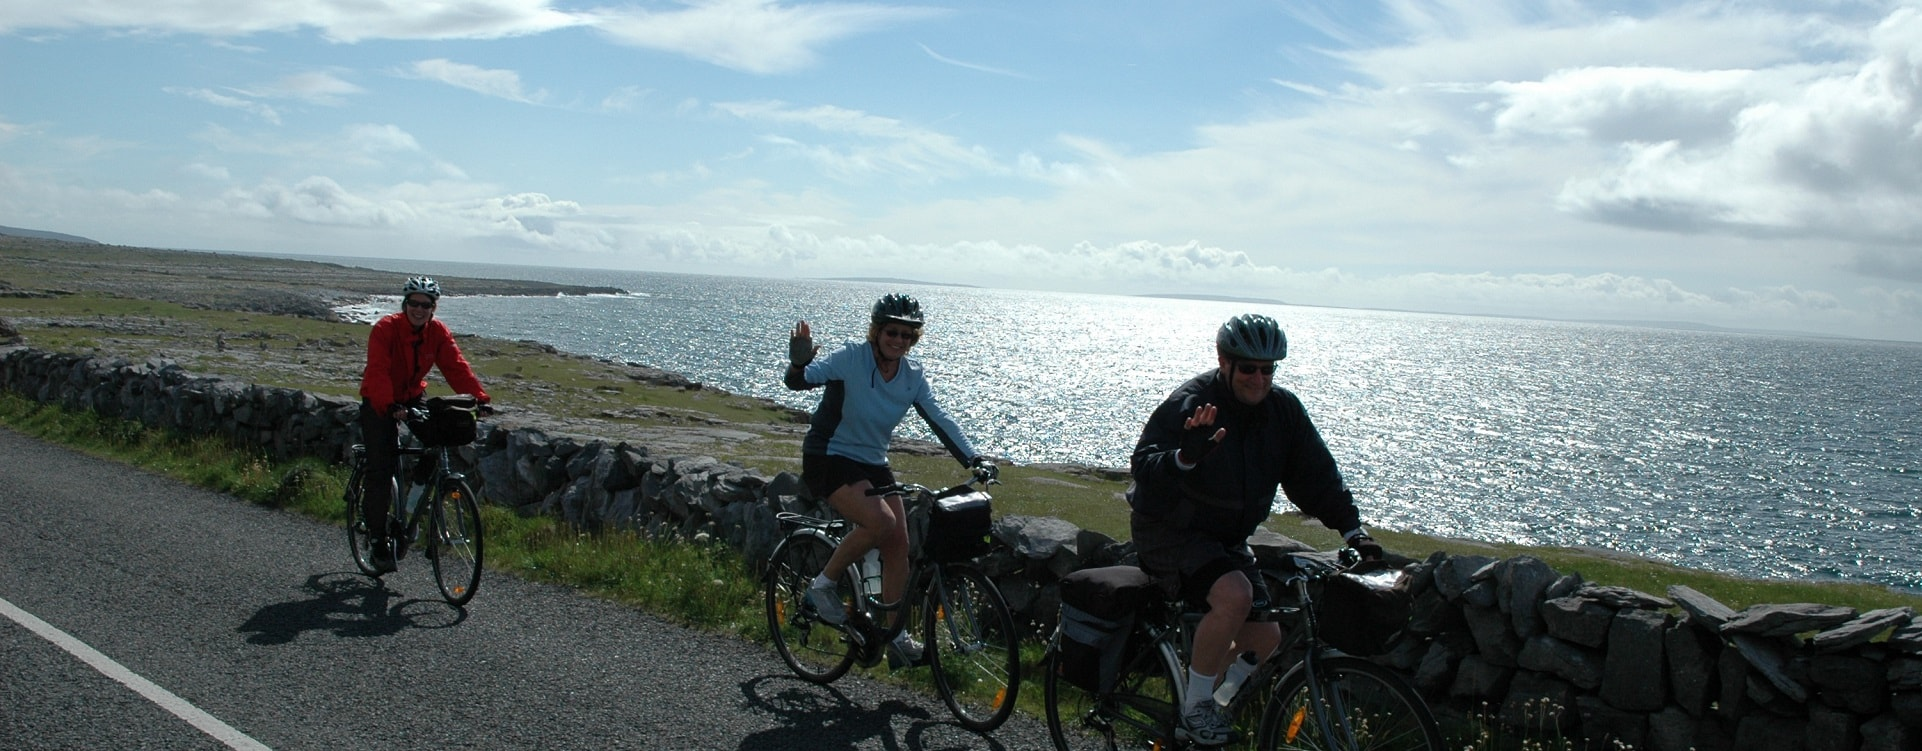 DAY 6 LEENANE TO CLIFDEN 35 miles / 58kms image 1